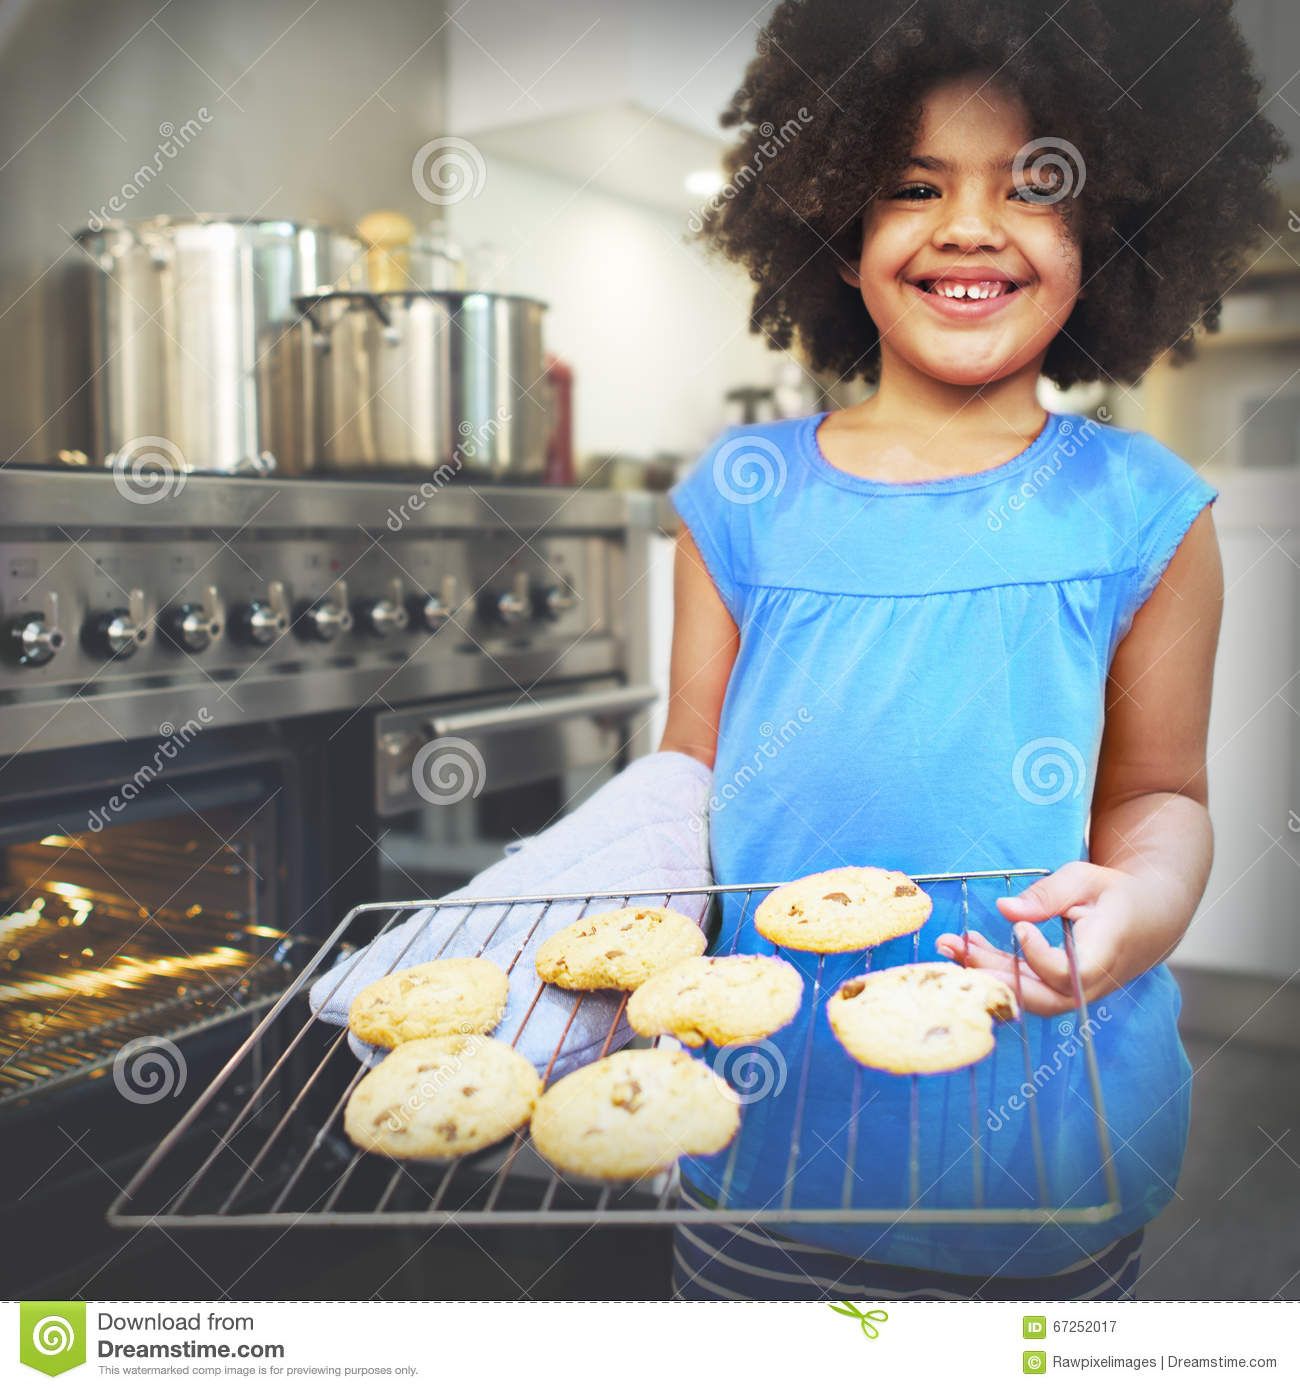 Cookie Bake Bakery Child Dessert Discovery Leisure Concept